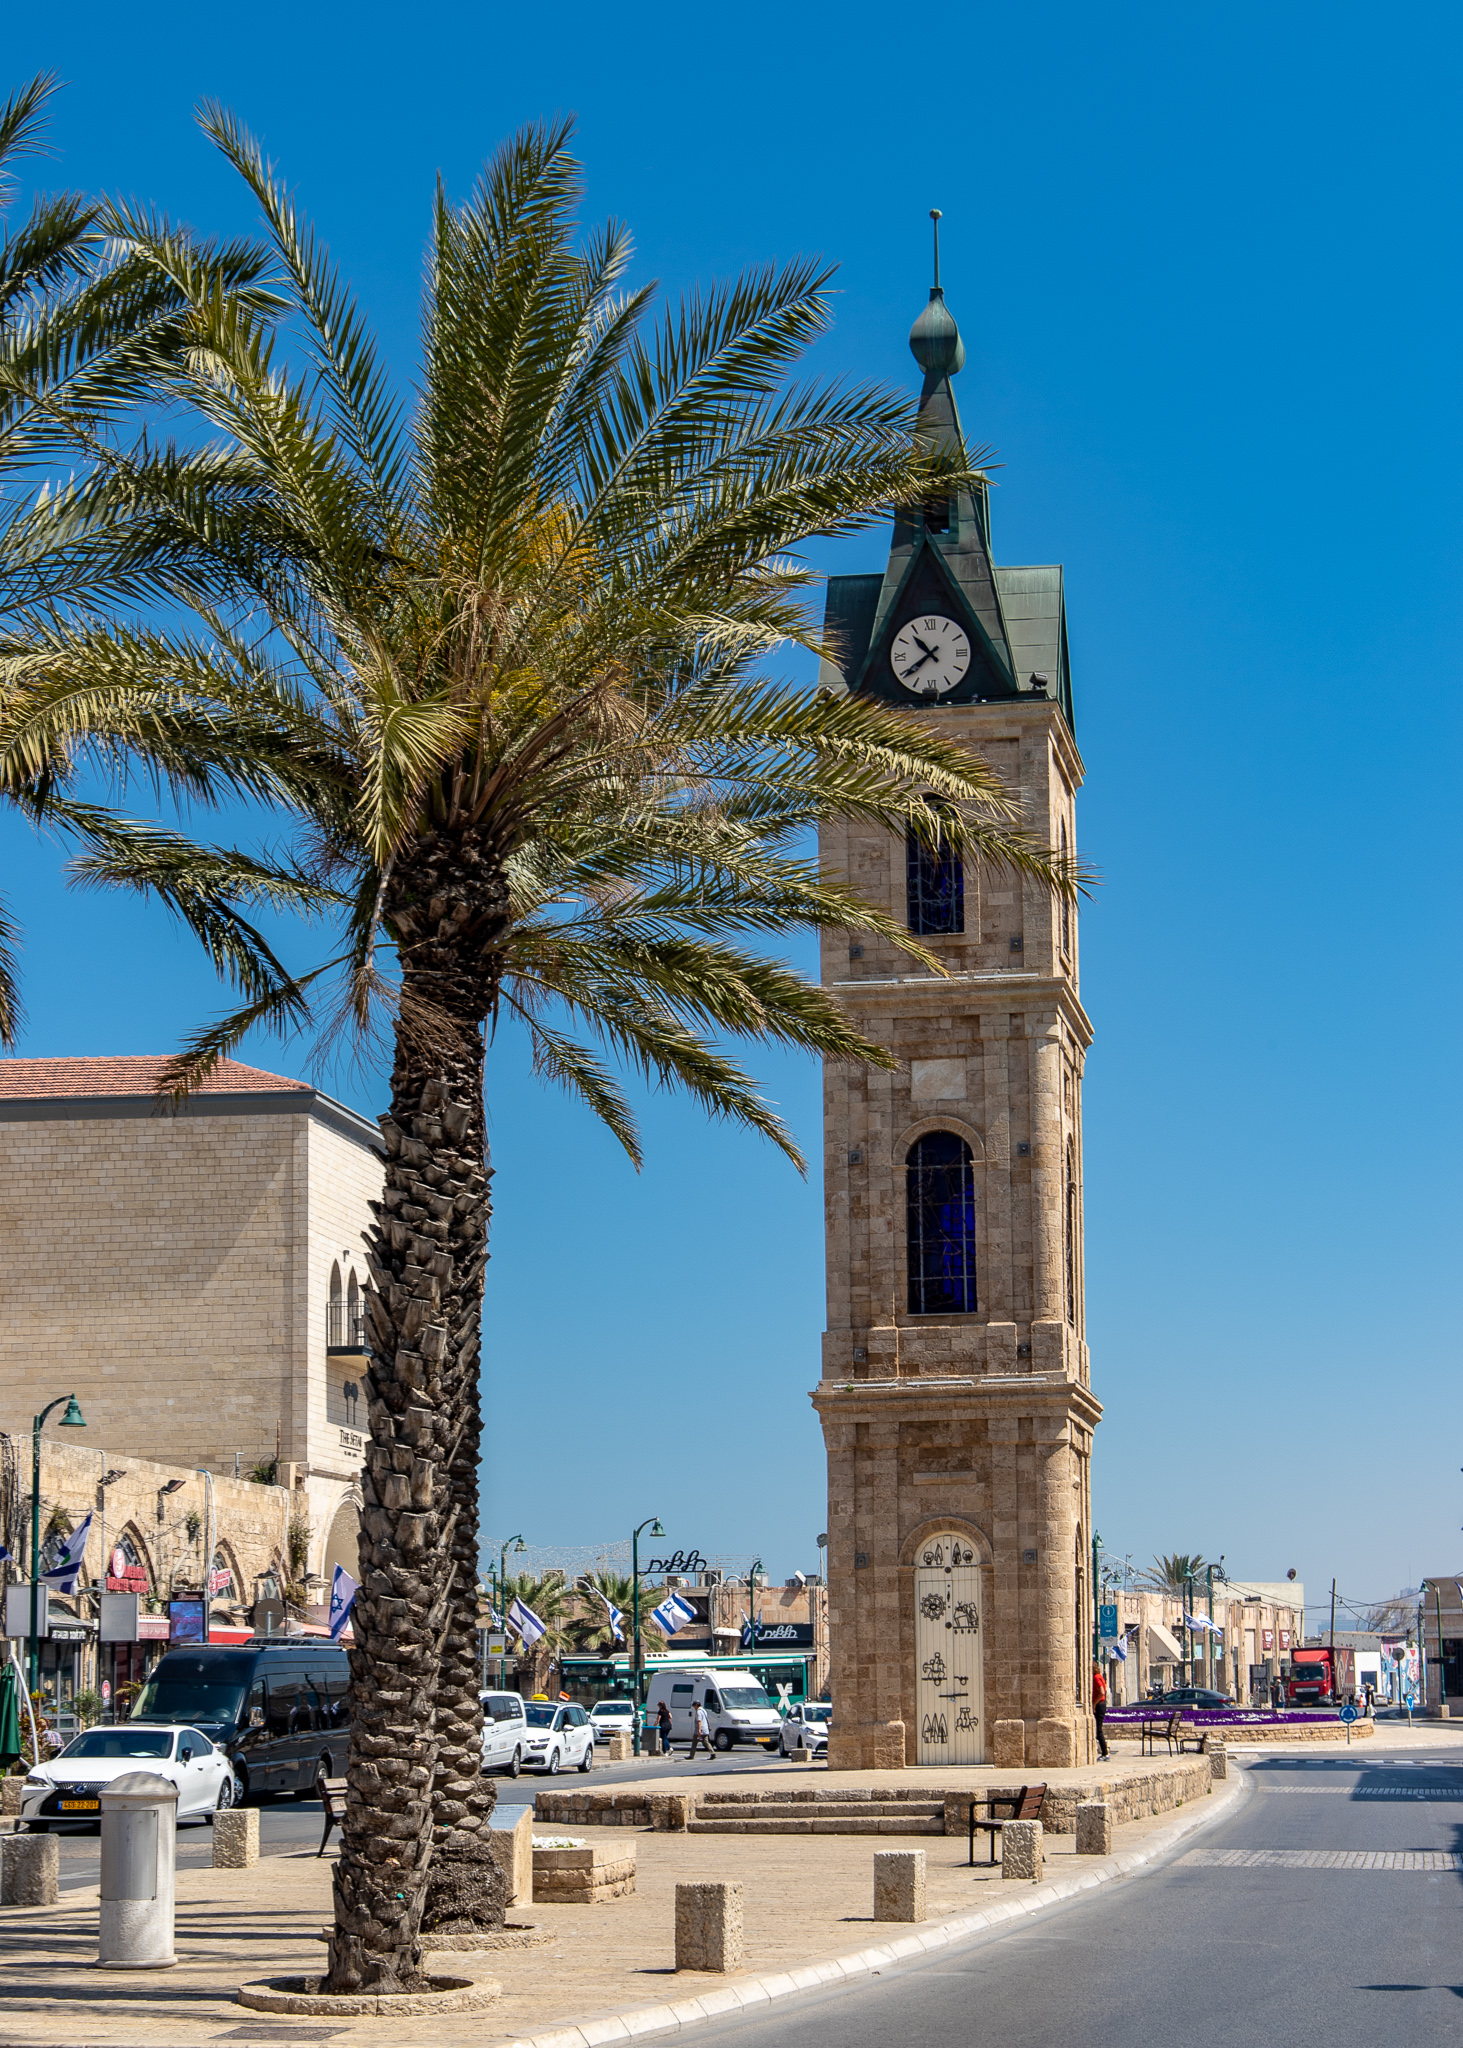 The Jaffa Clock Tower